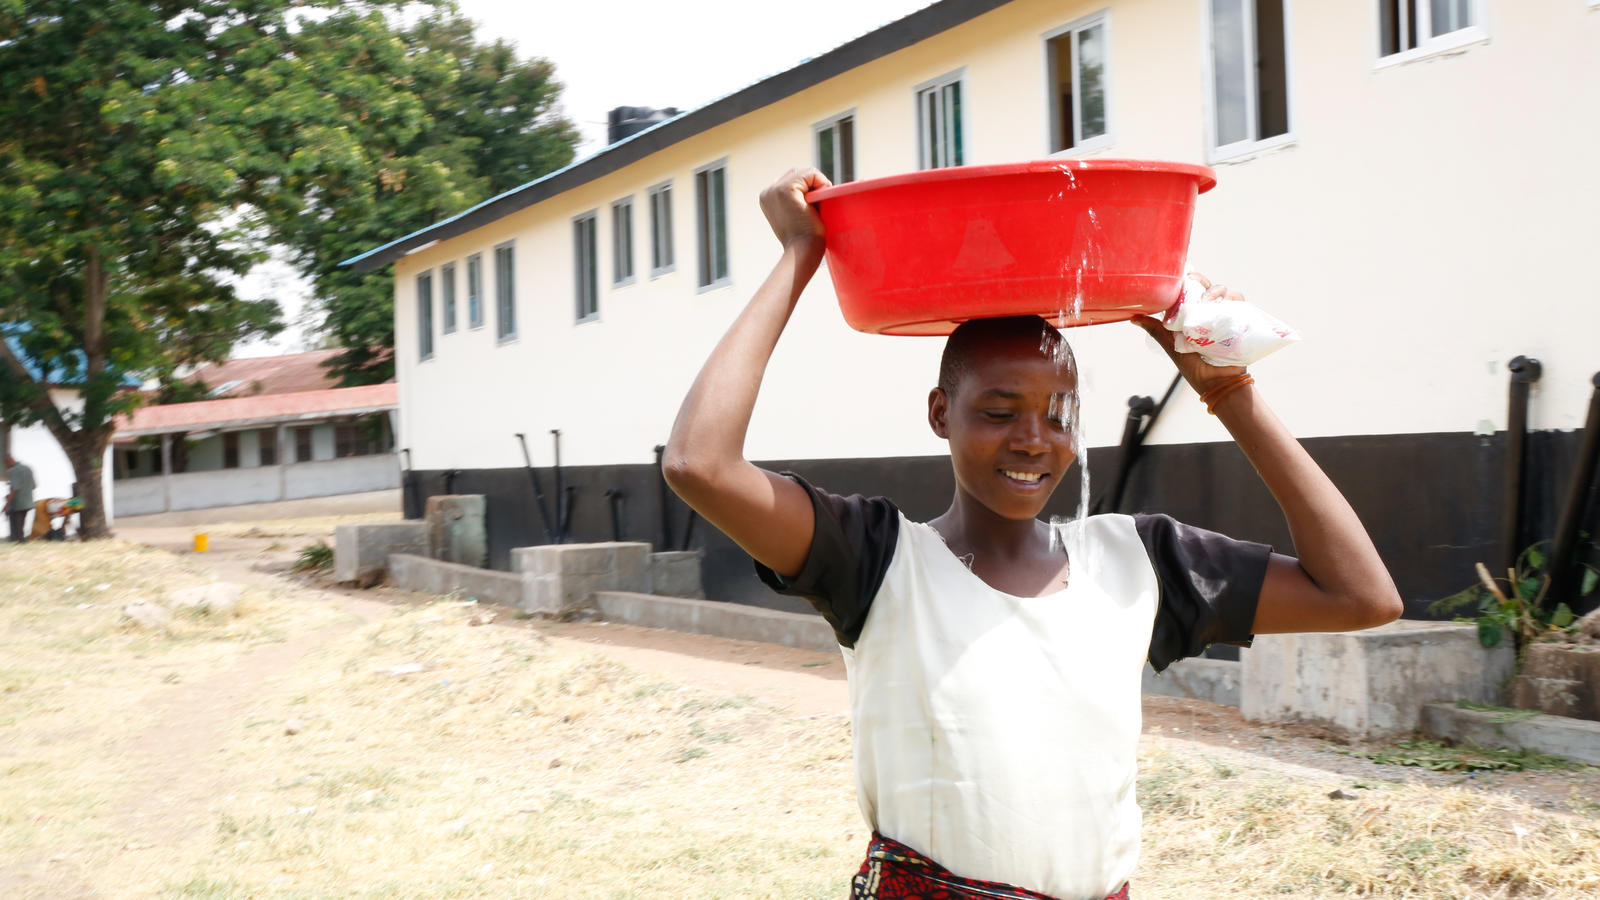 Dotto collects clean water at Kiomboi Hospital, Tanzania, which benefited from DfID match funding.